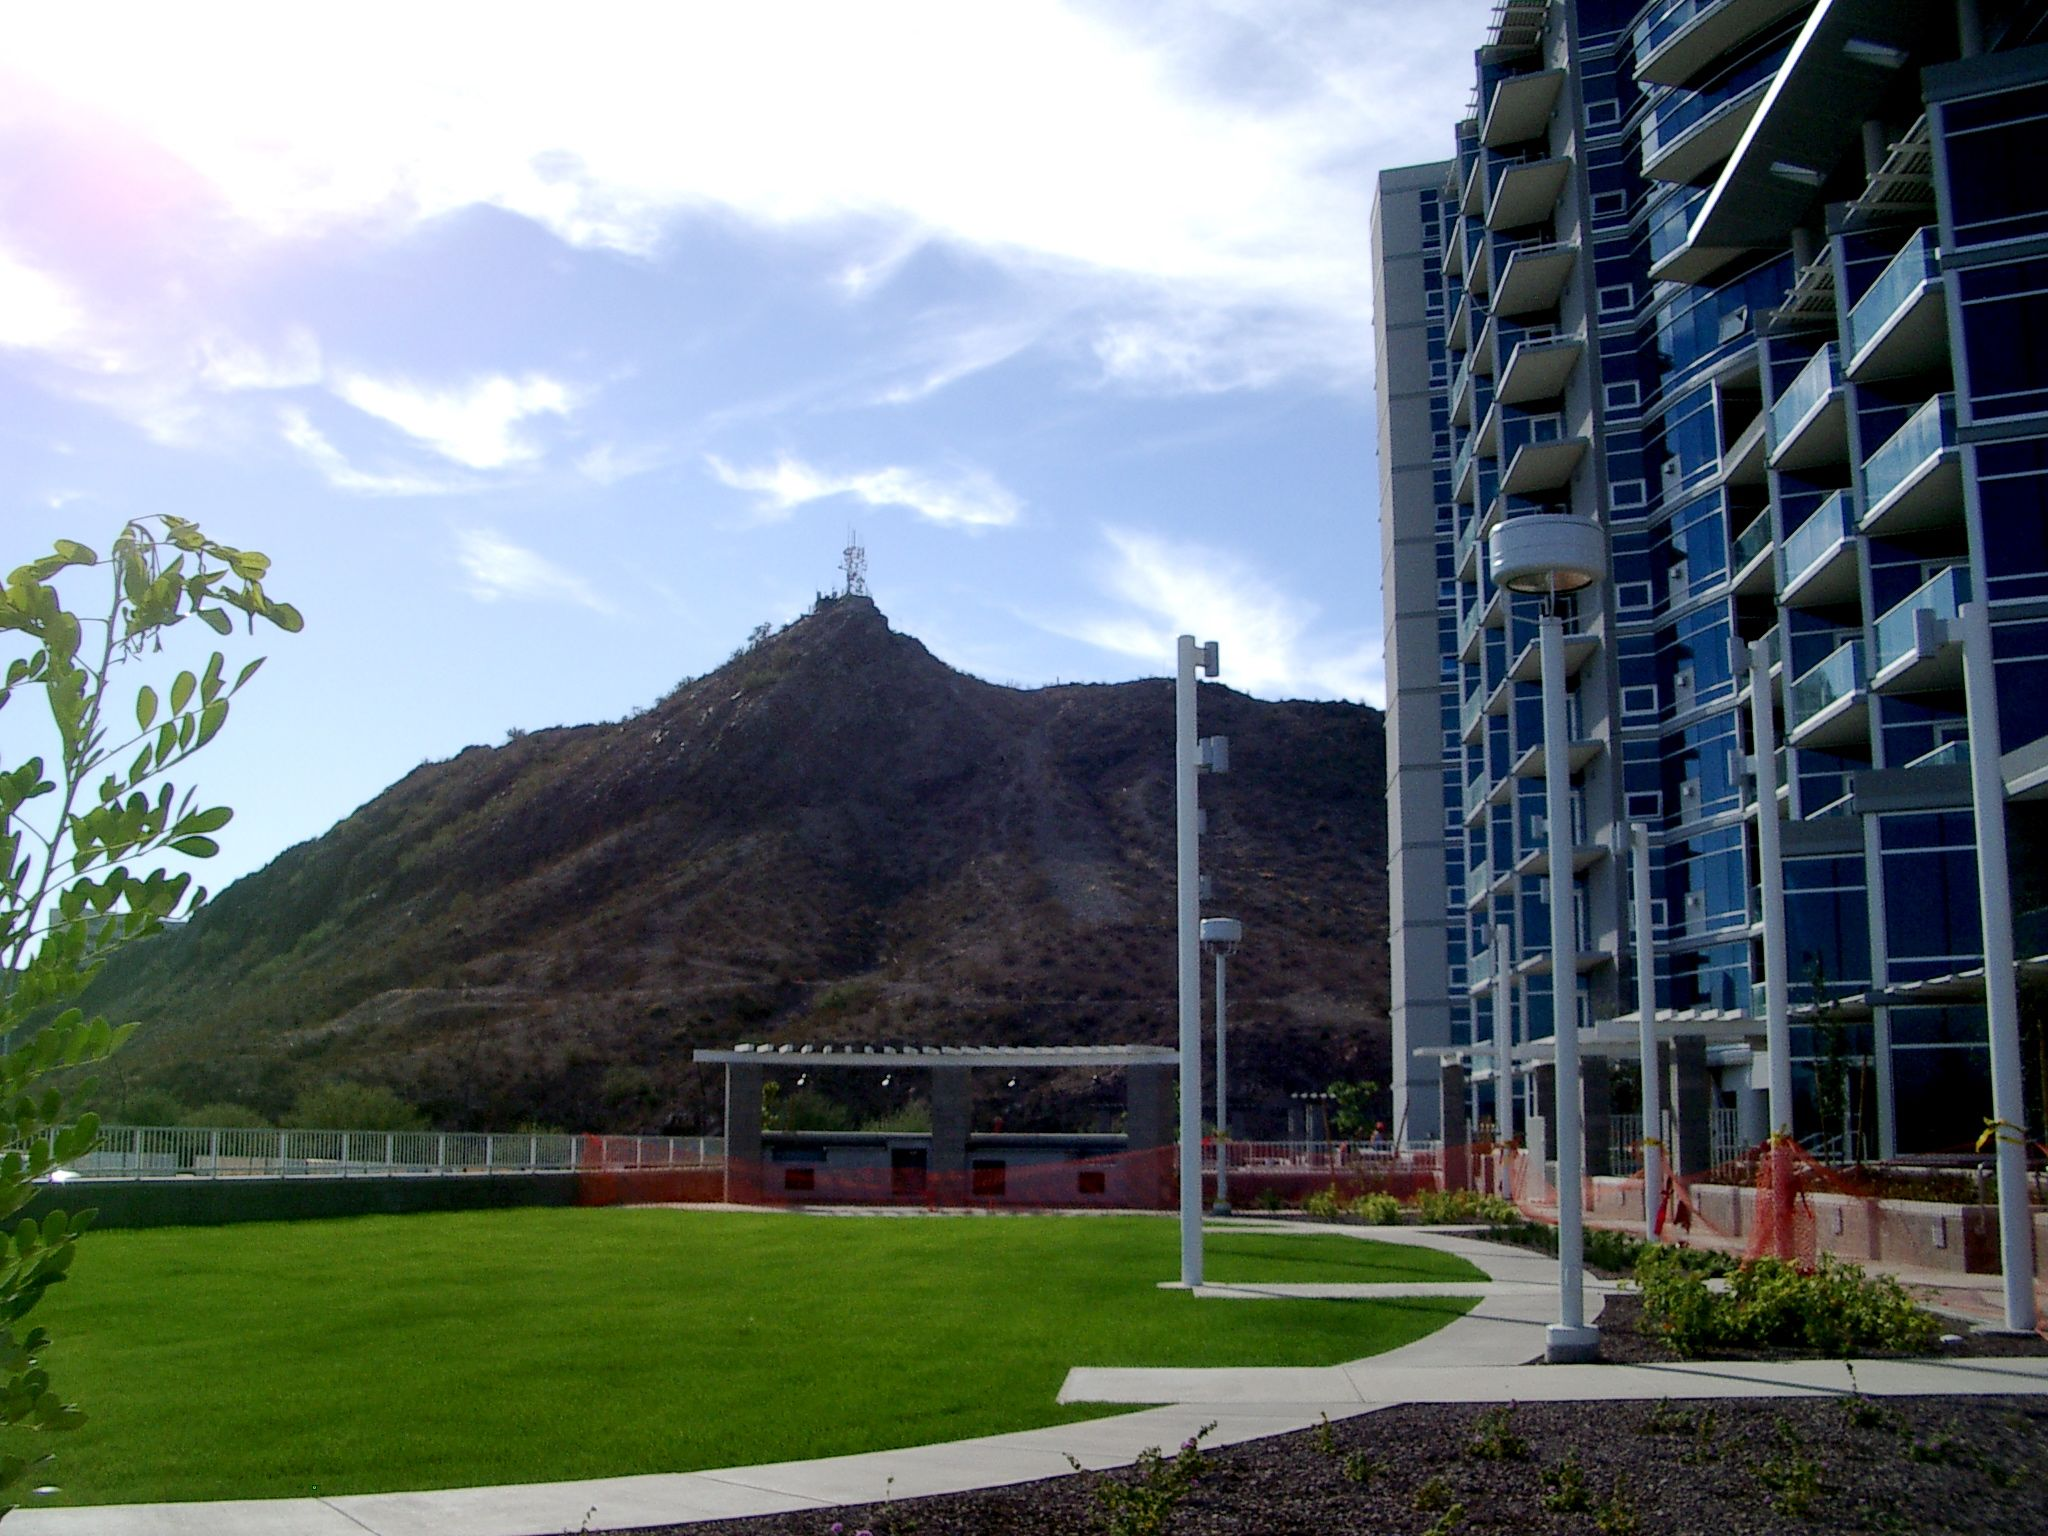 Hayden Ferry Lakeside - Bridgeview Condominiums